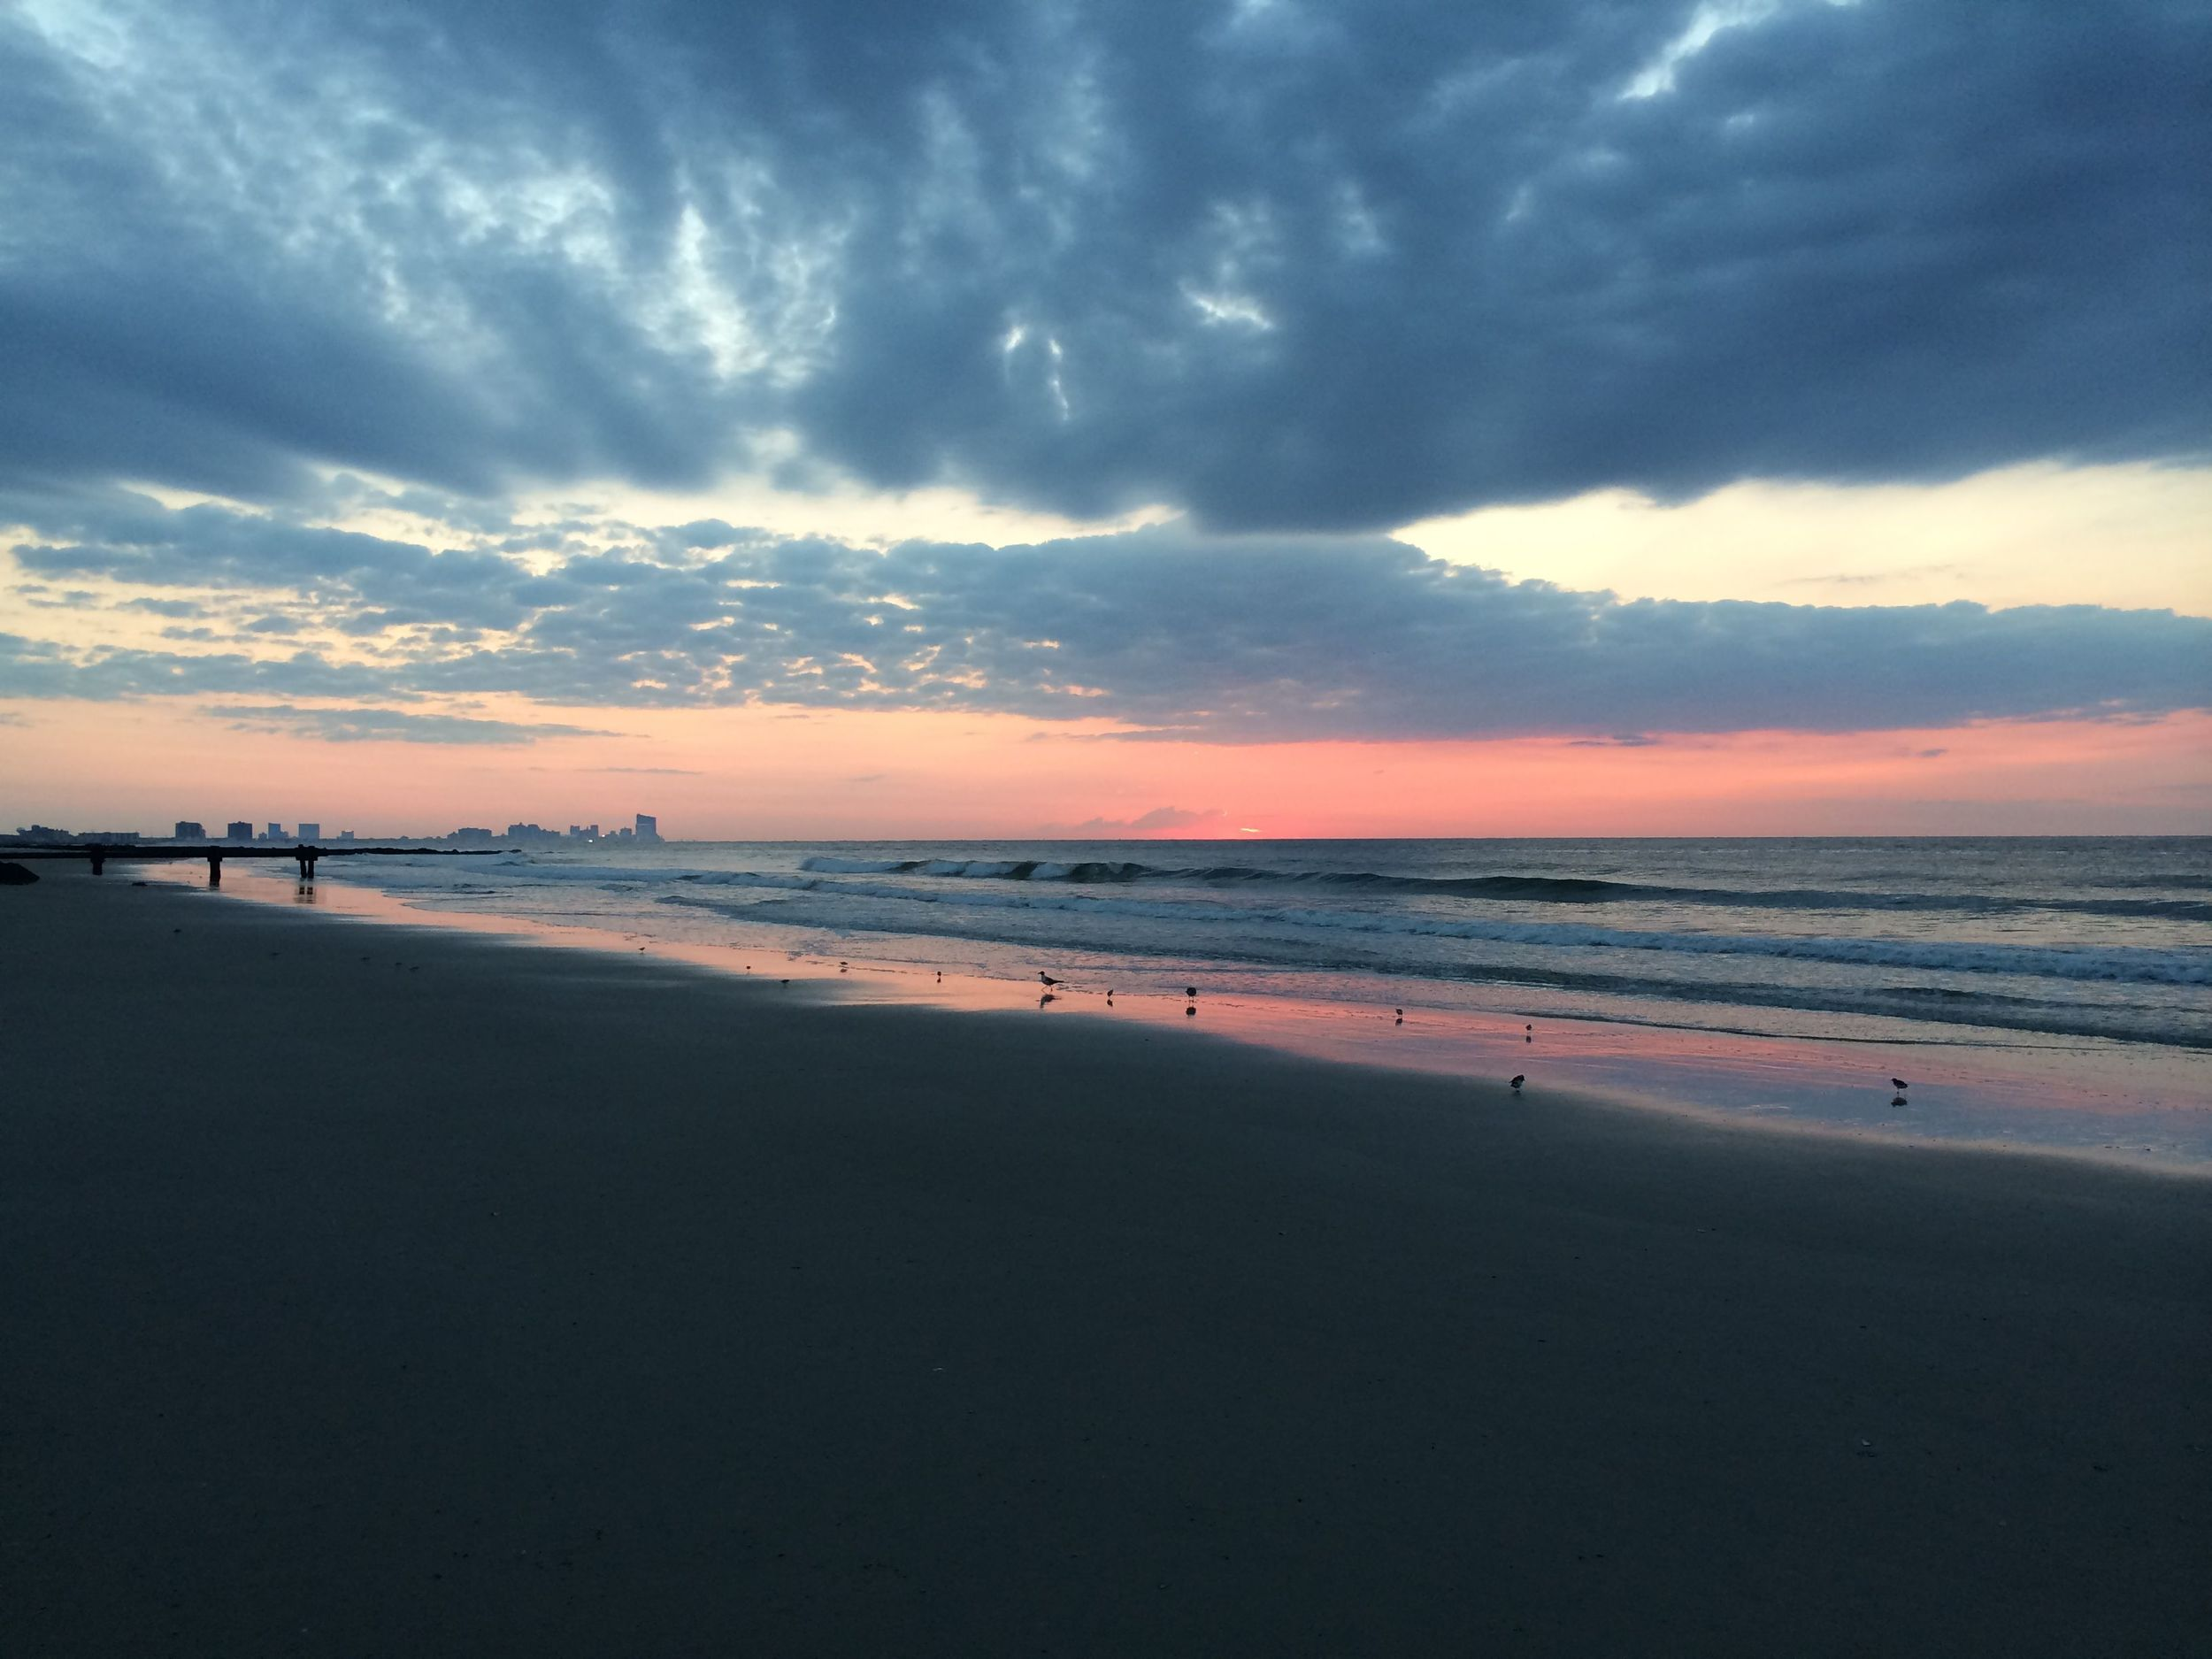 Ocean City, New Jersey. August 2014. Waiting for the light.